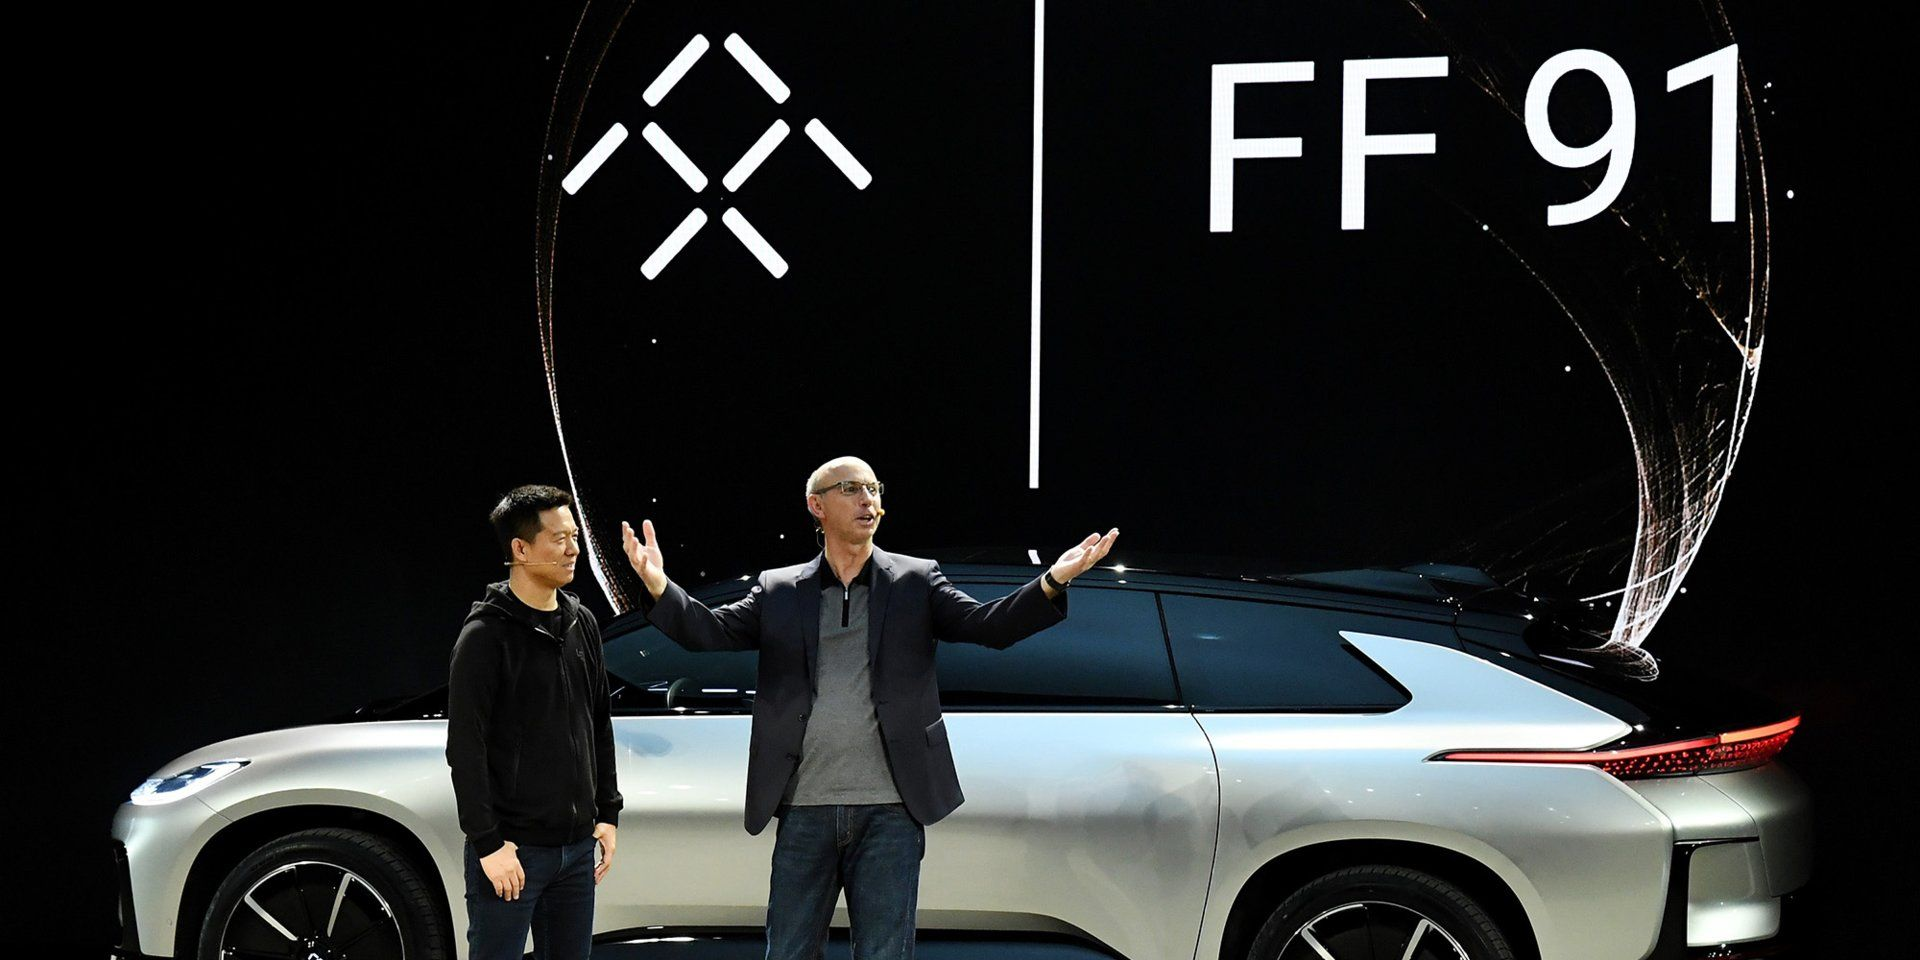 Electric-car startup Faraday Future shakes up its